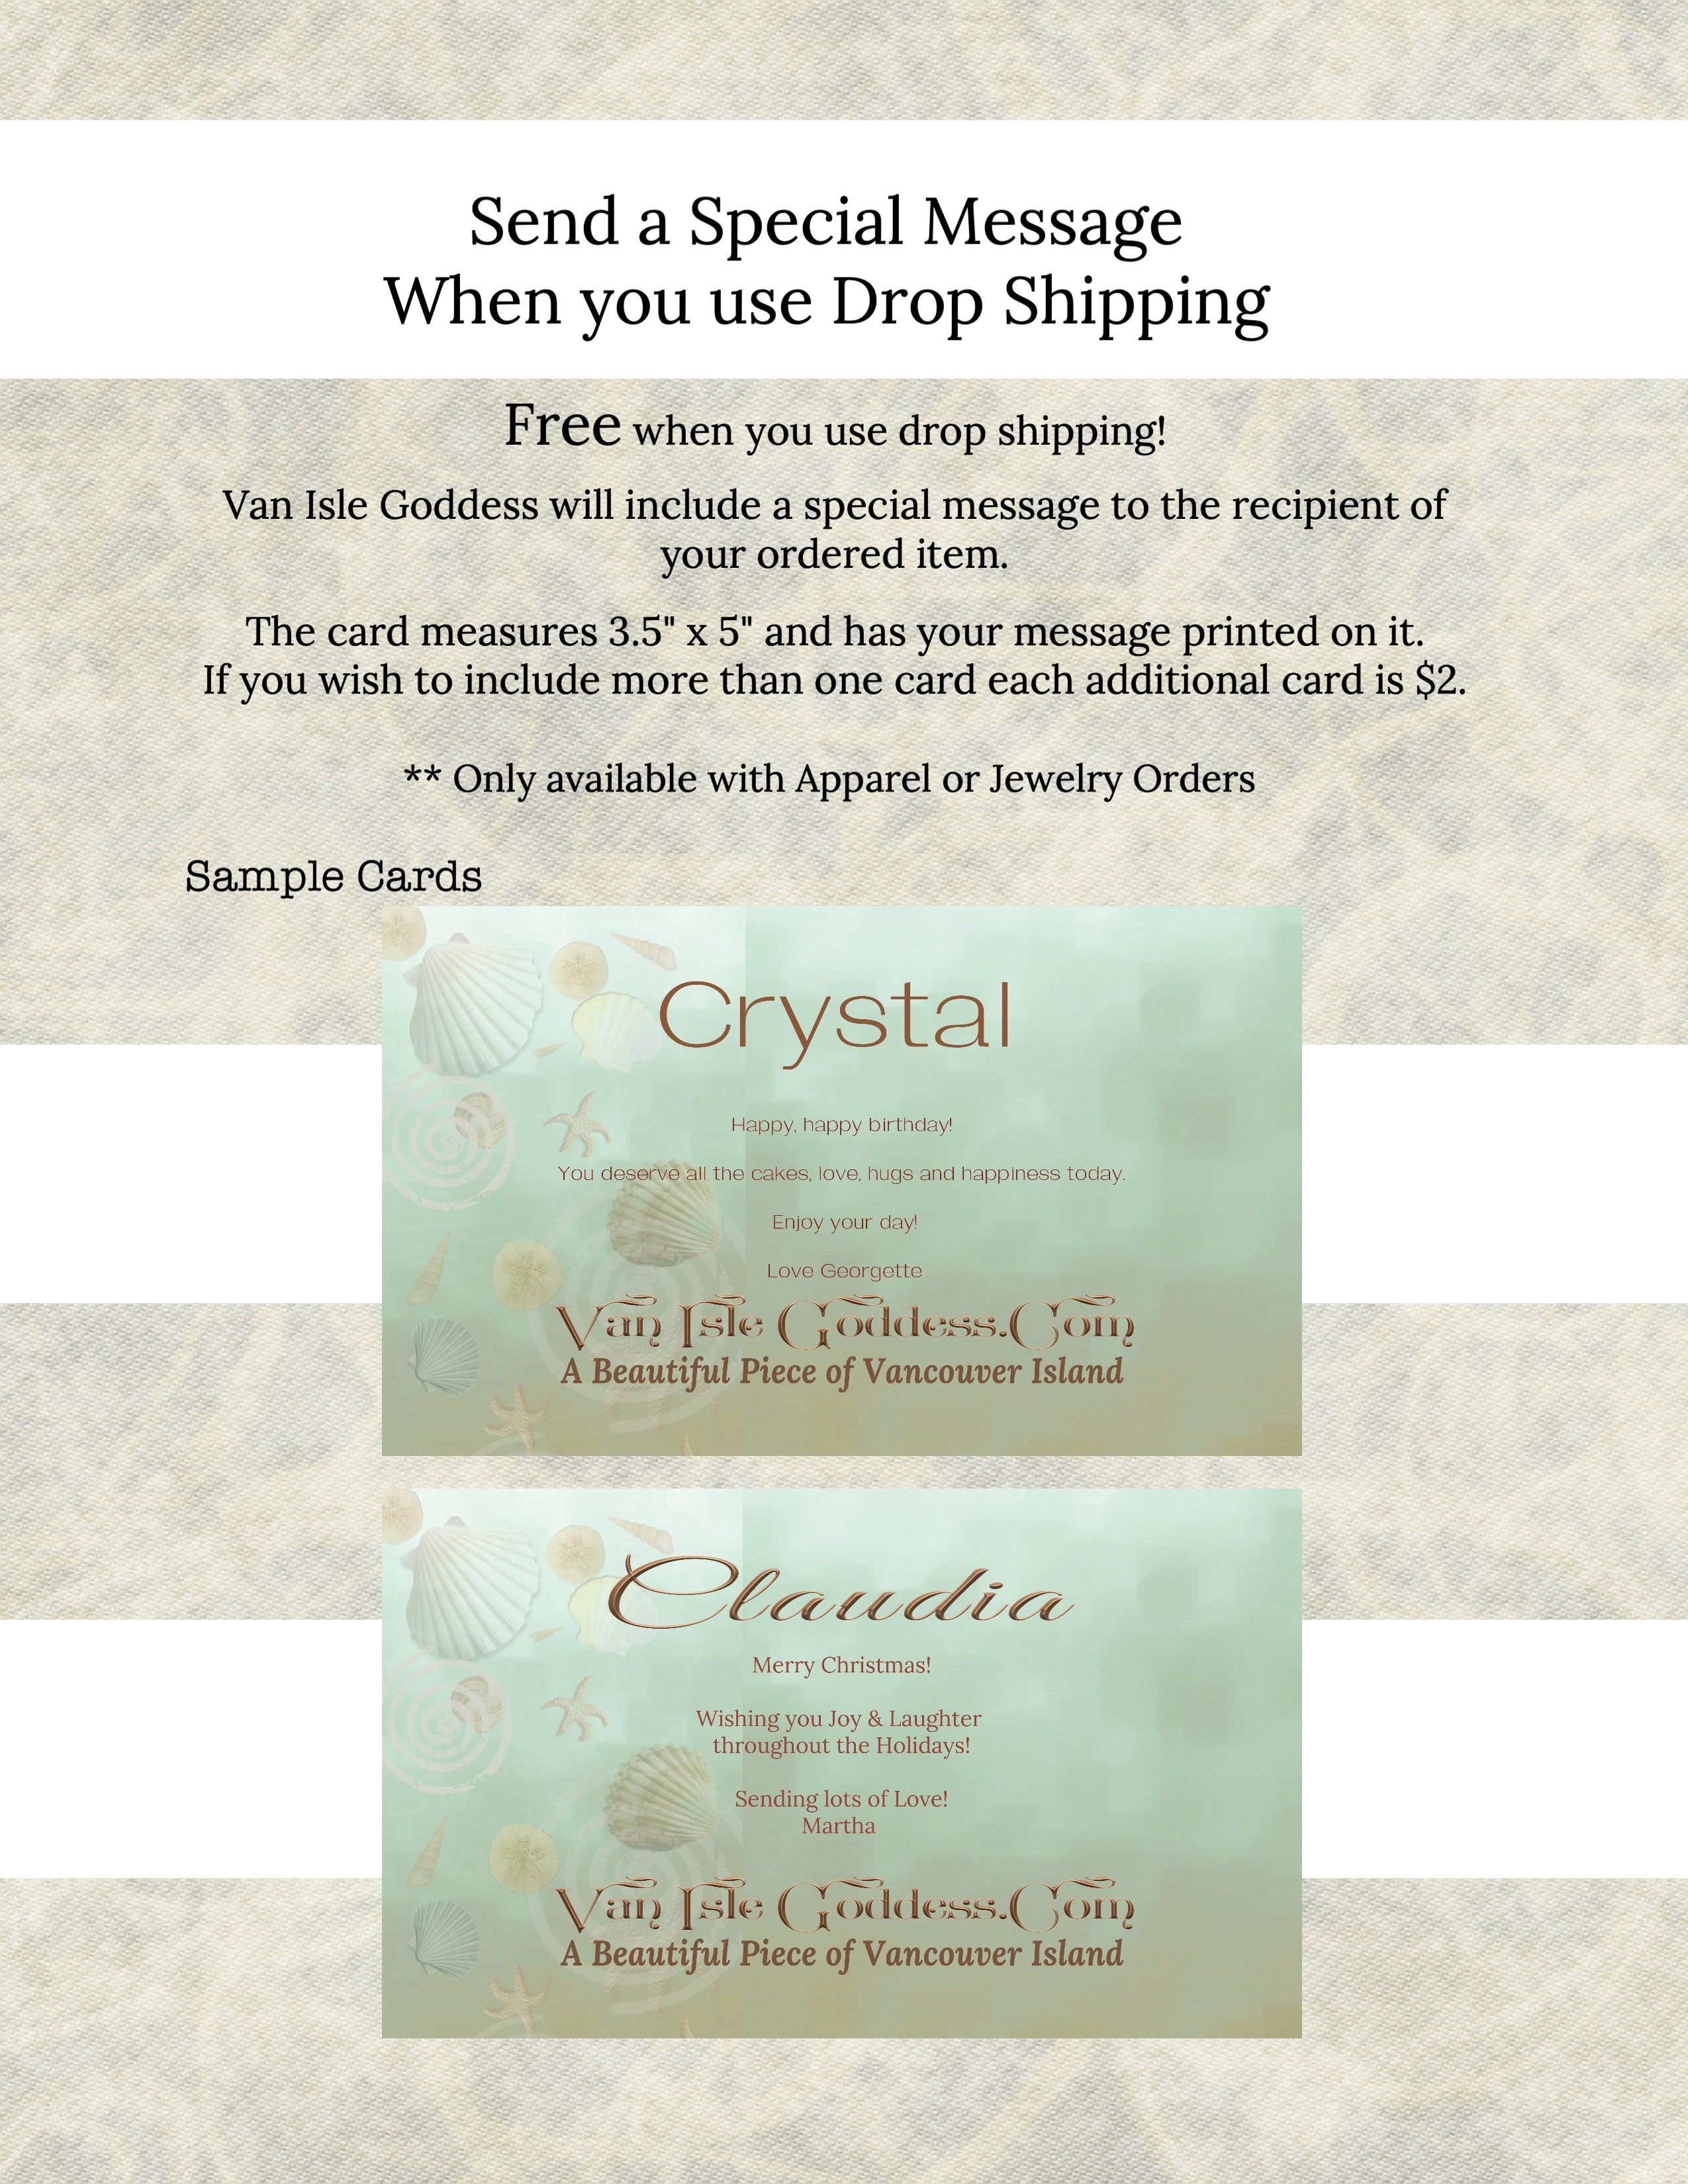 Send a special message when you use Drop Shipping!